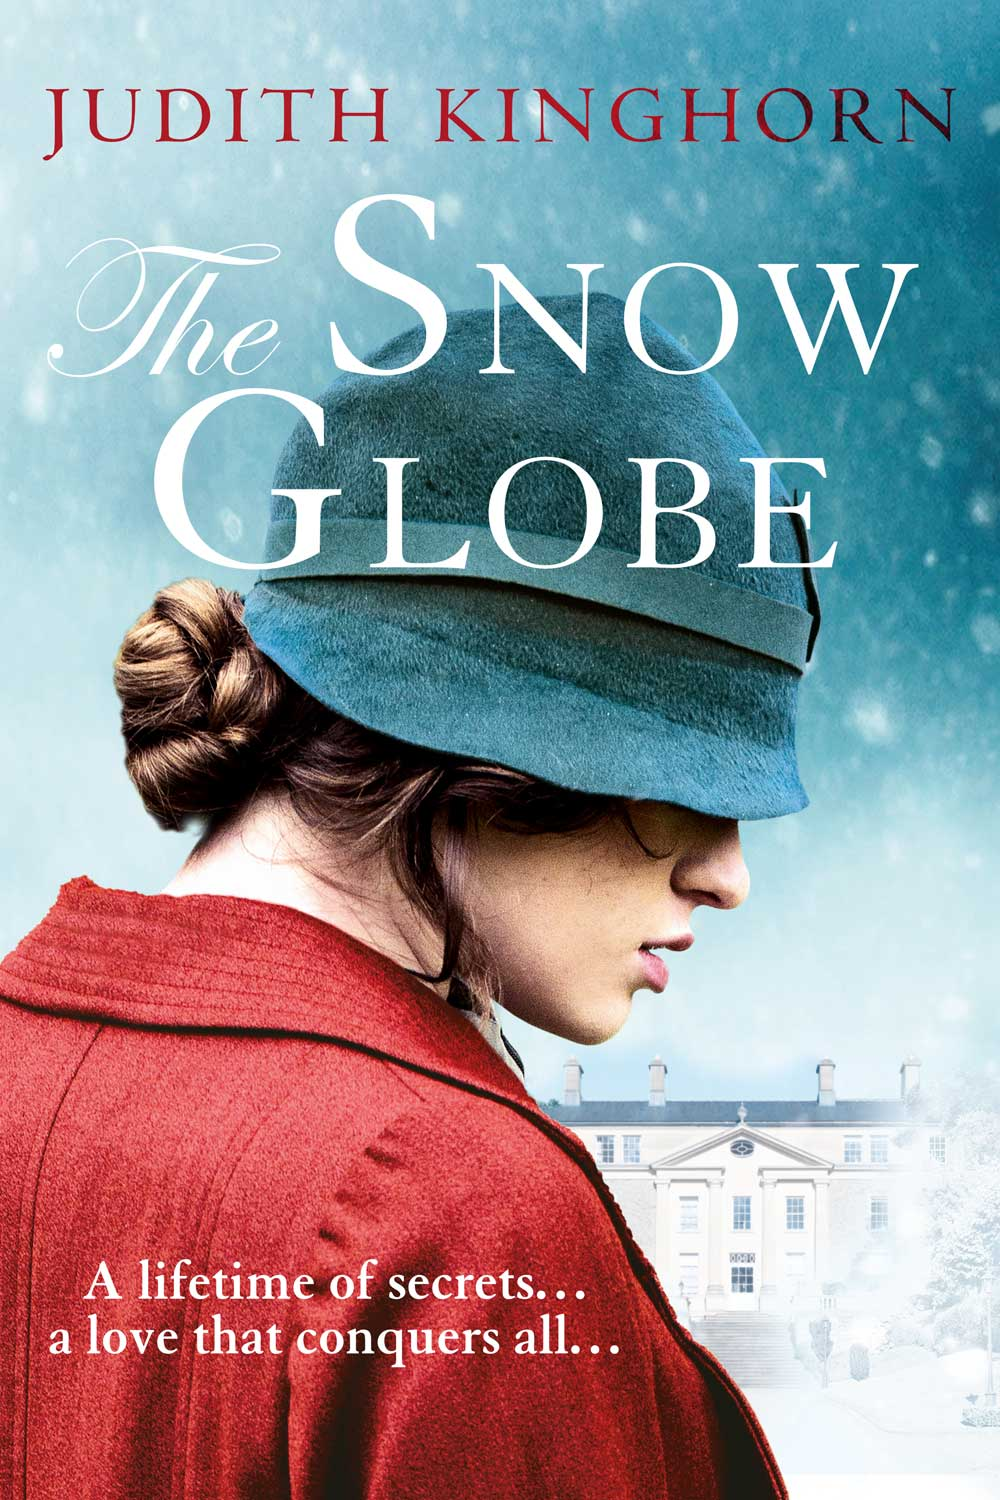 judith_kinghorn_the_snow_globe